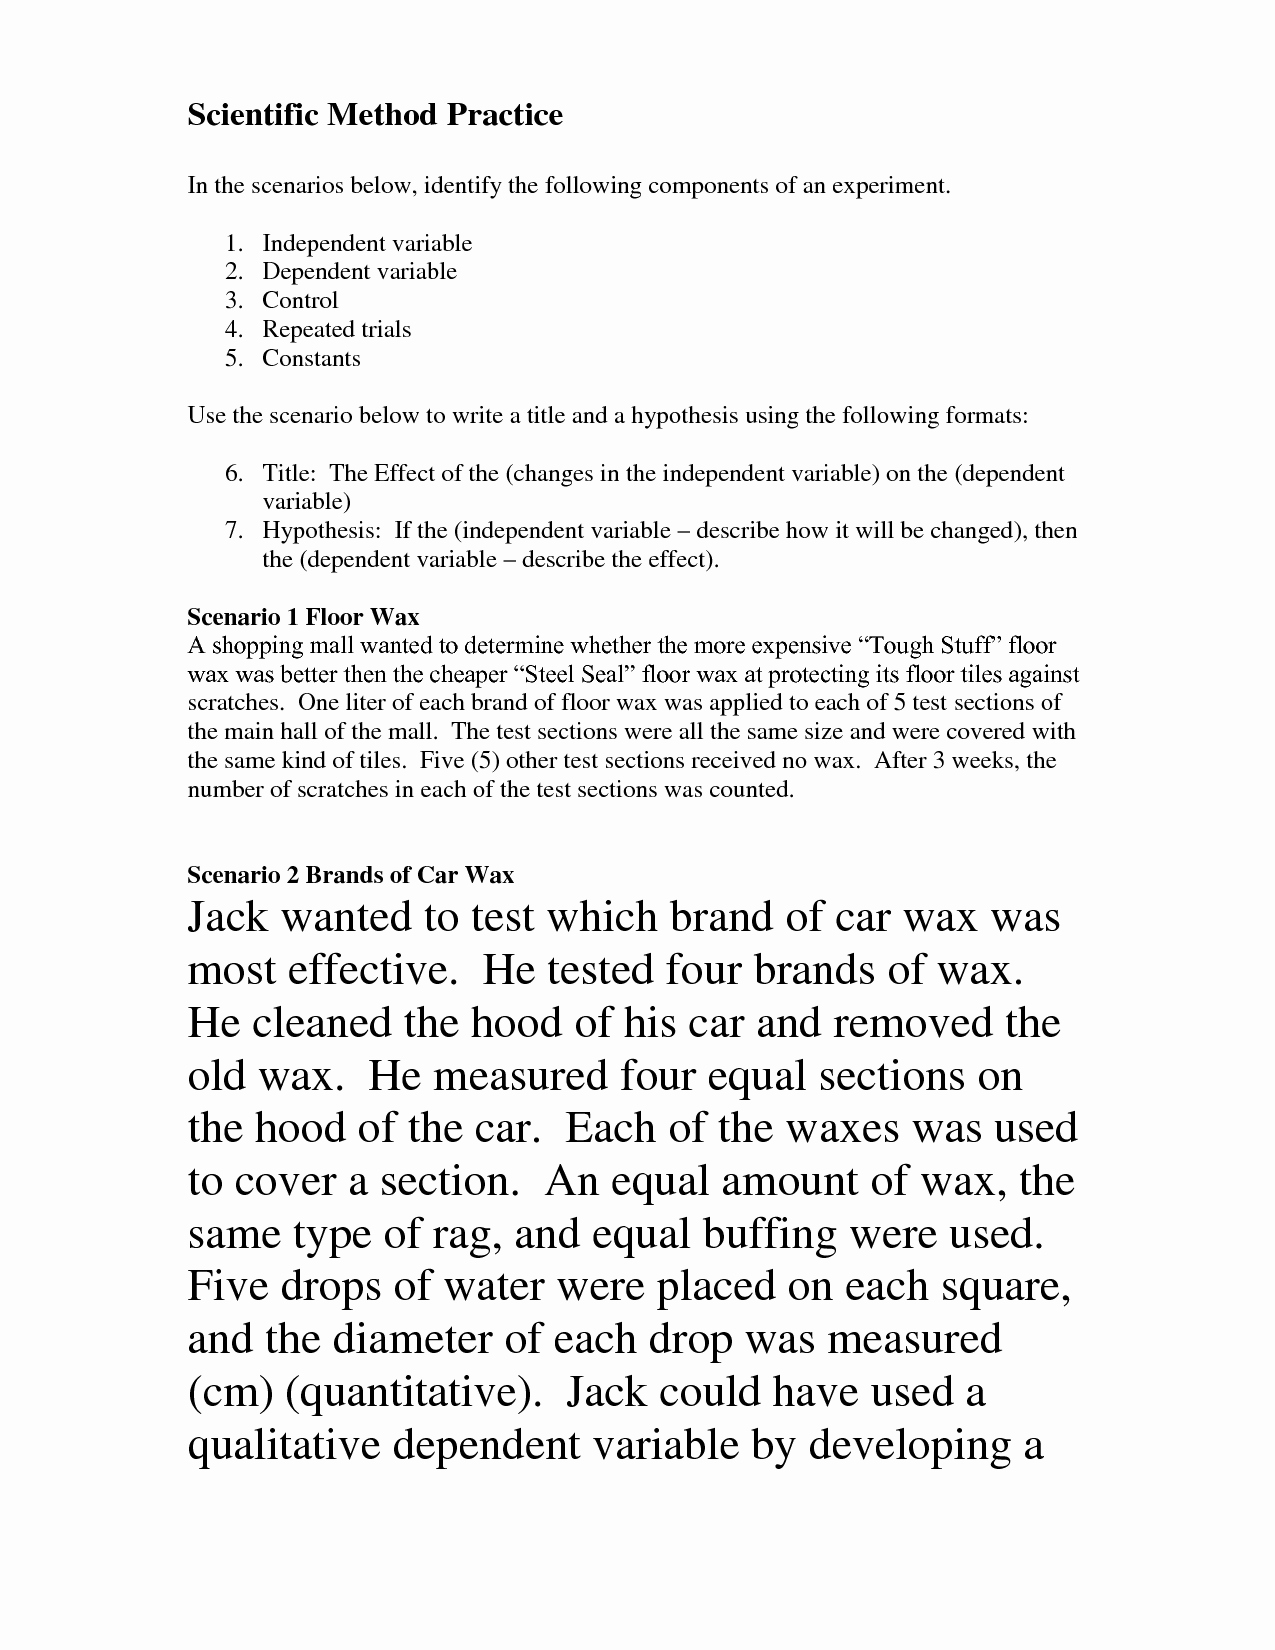 Scientific Method Examples Worksheet Beautiful Scientific Method Scenarios Worksheet